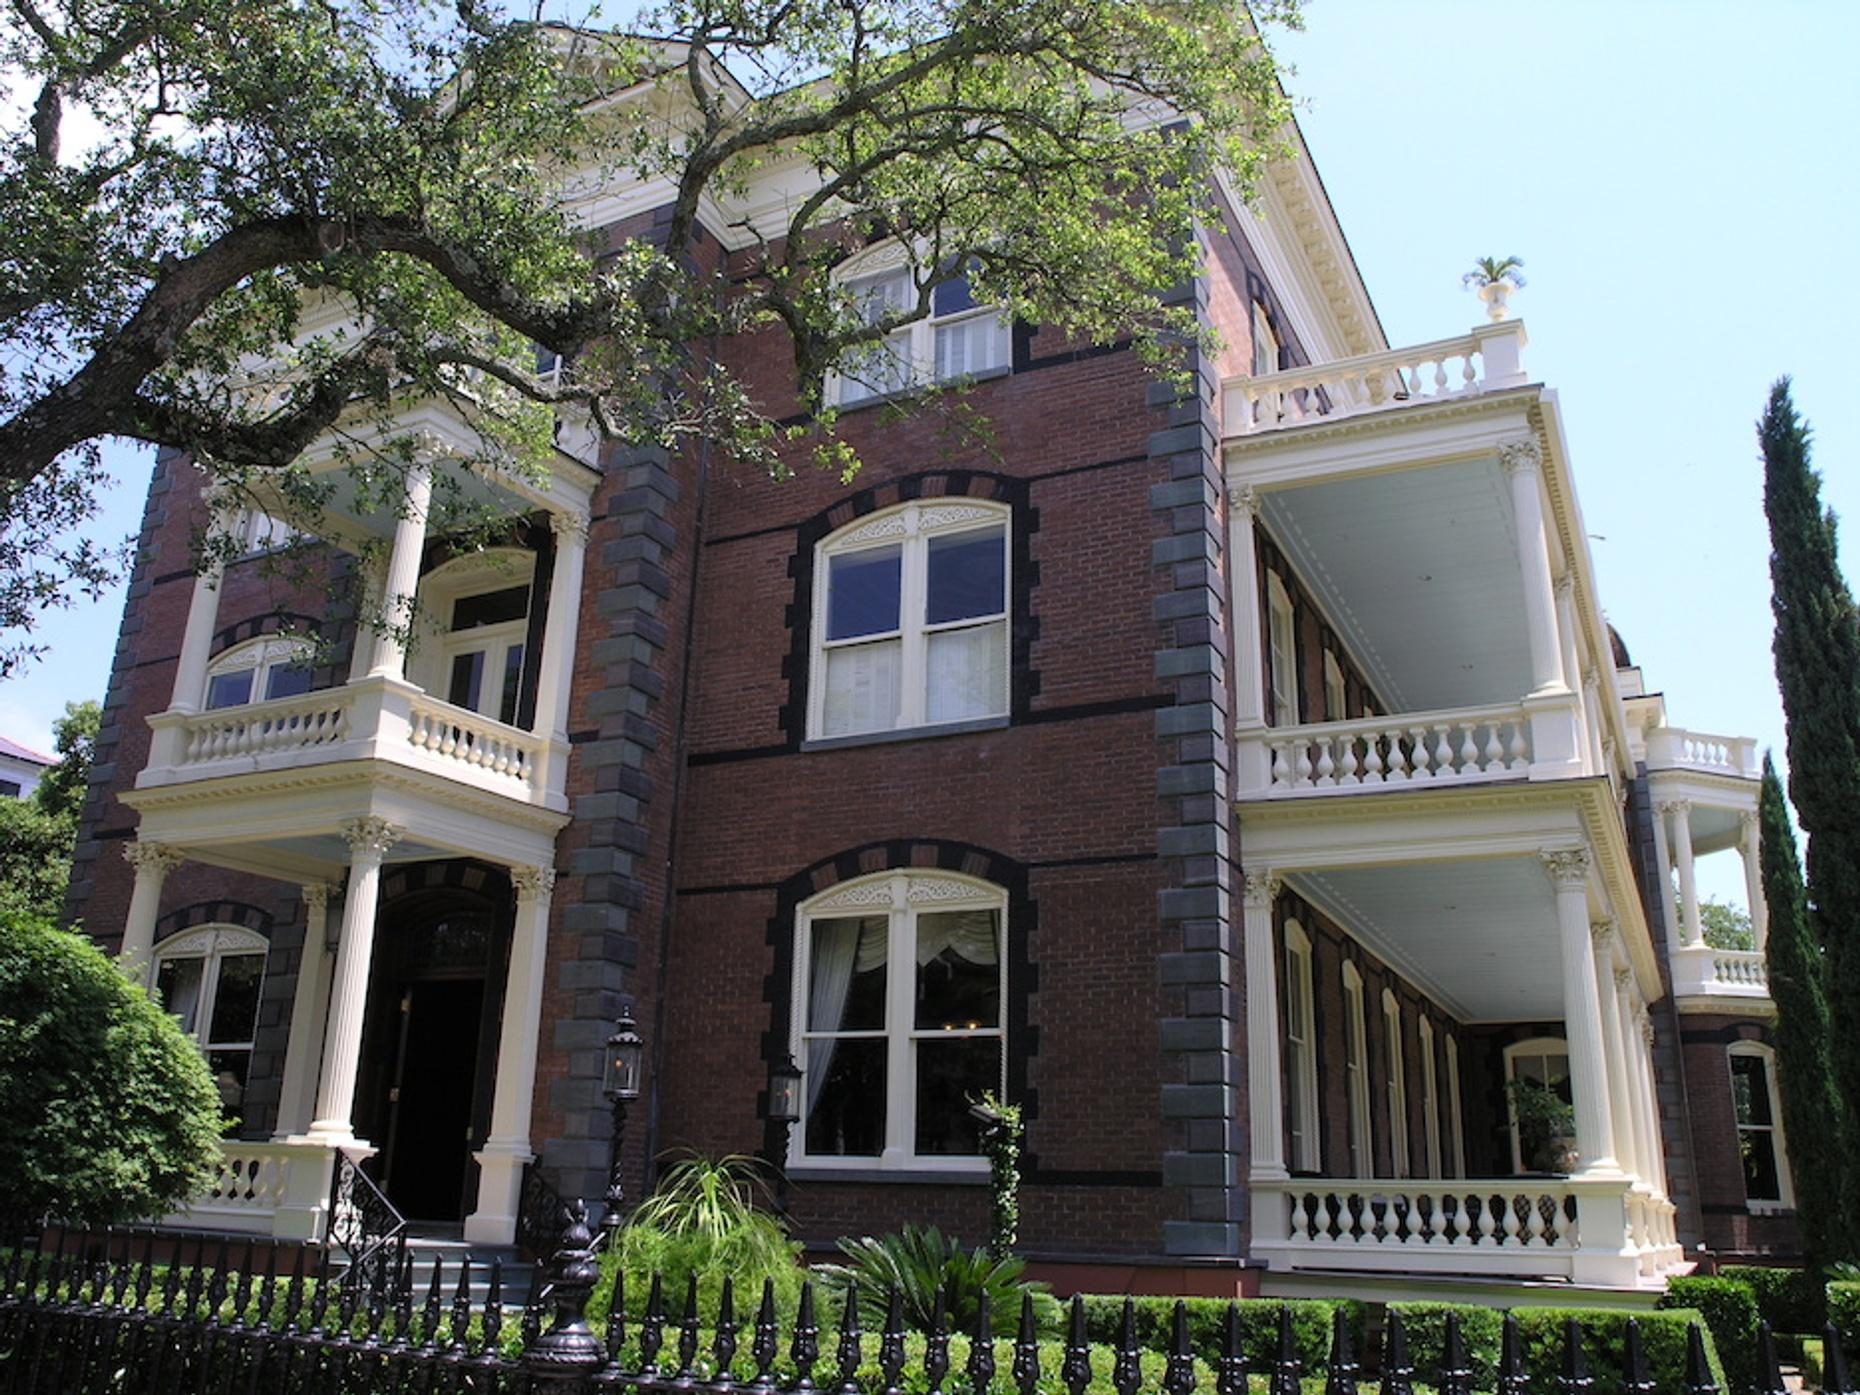 Guided Tour of the Calhoun Mansion in Charleston